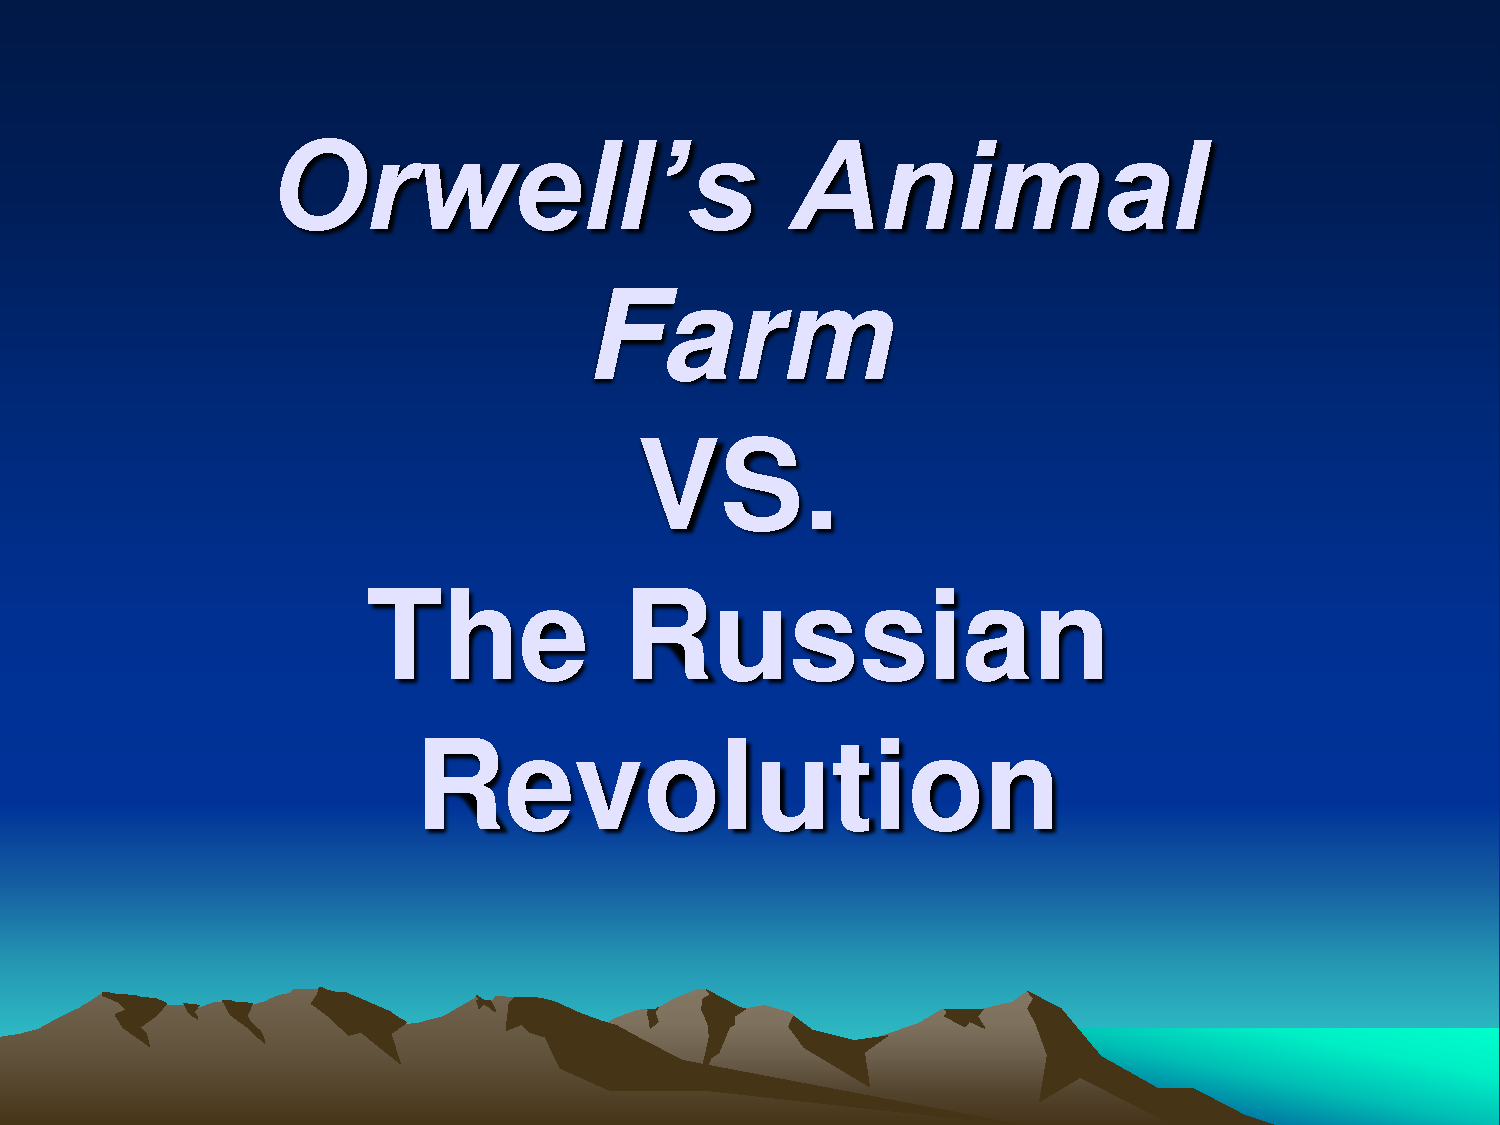 essays comparing animal farm to the russian revolution